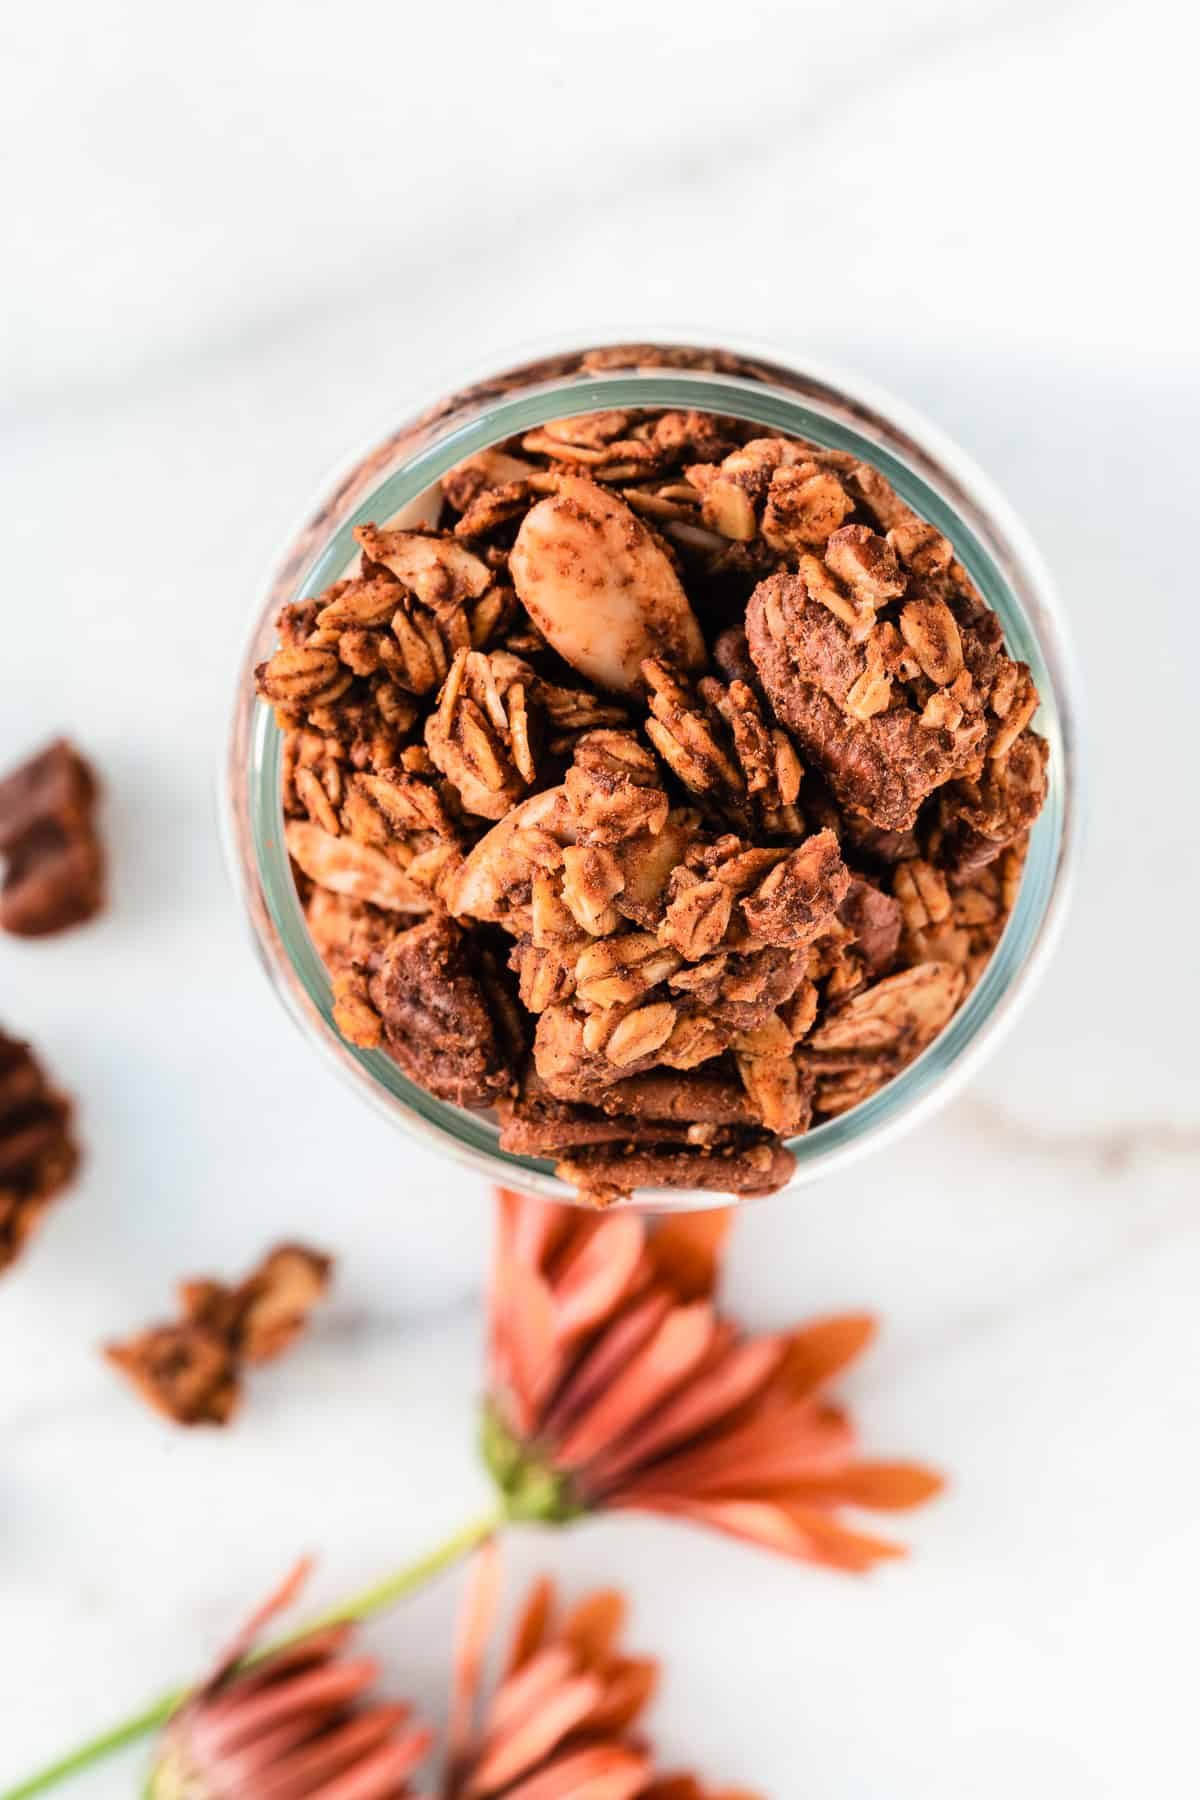 Overhead shot of jar full of pumpkin spiced granola with pecans and orange flowers on surface